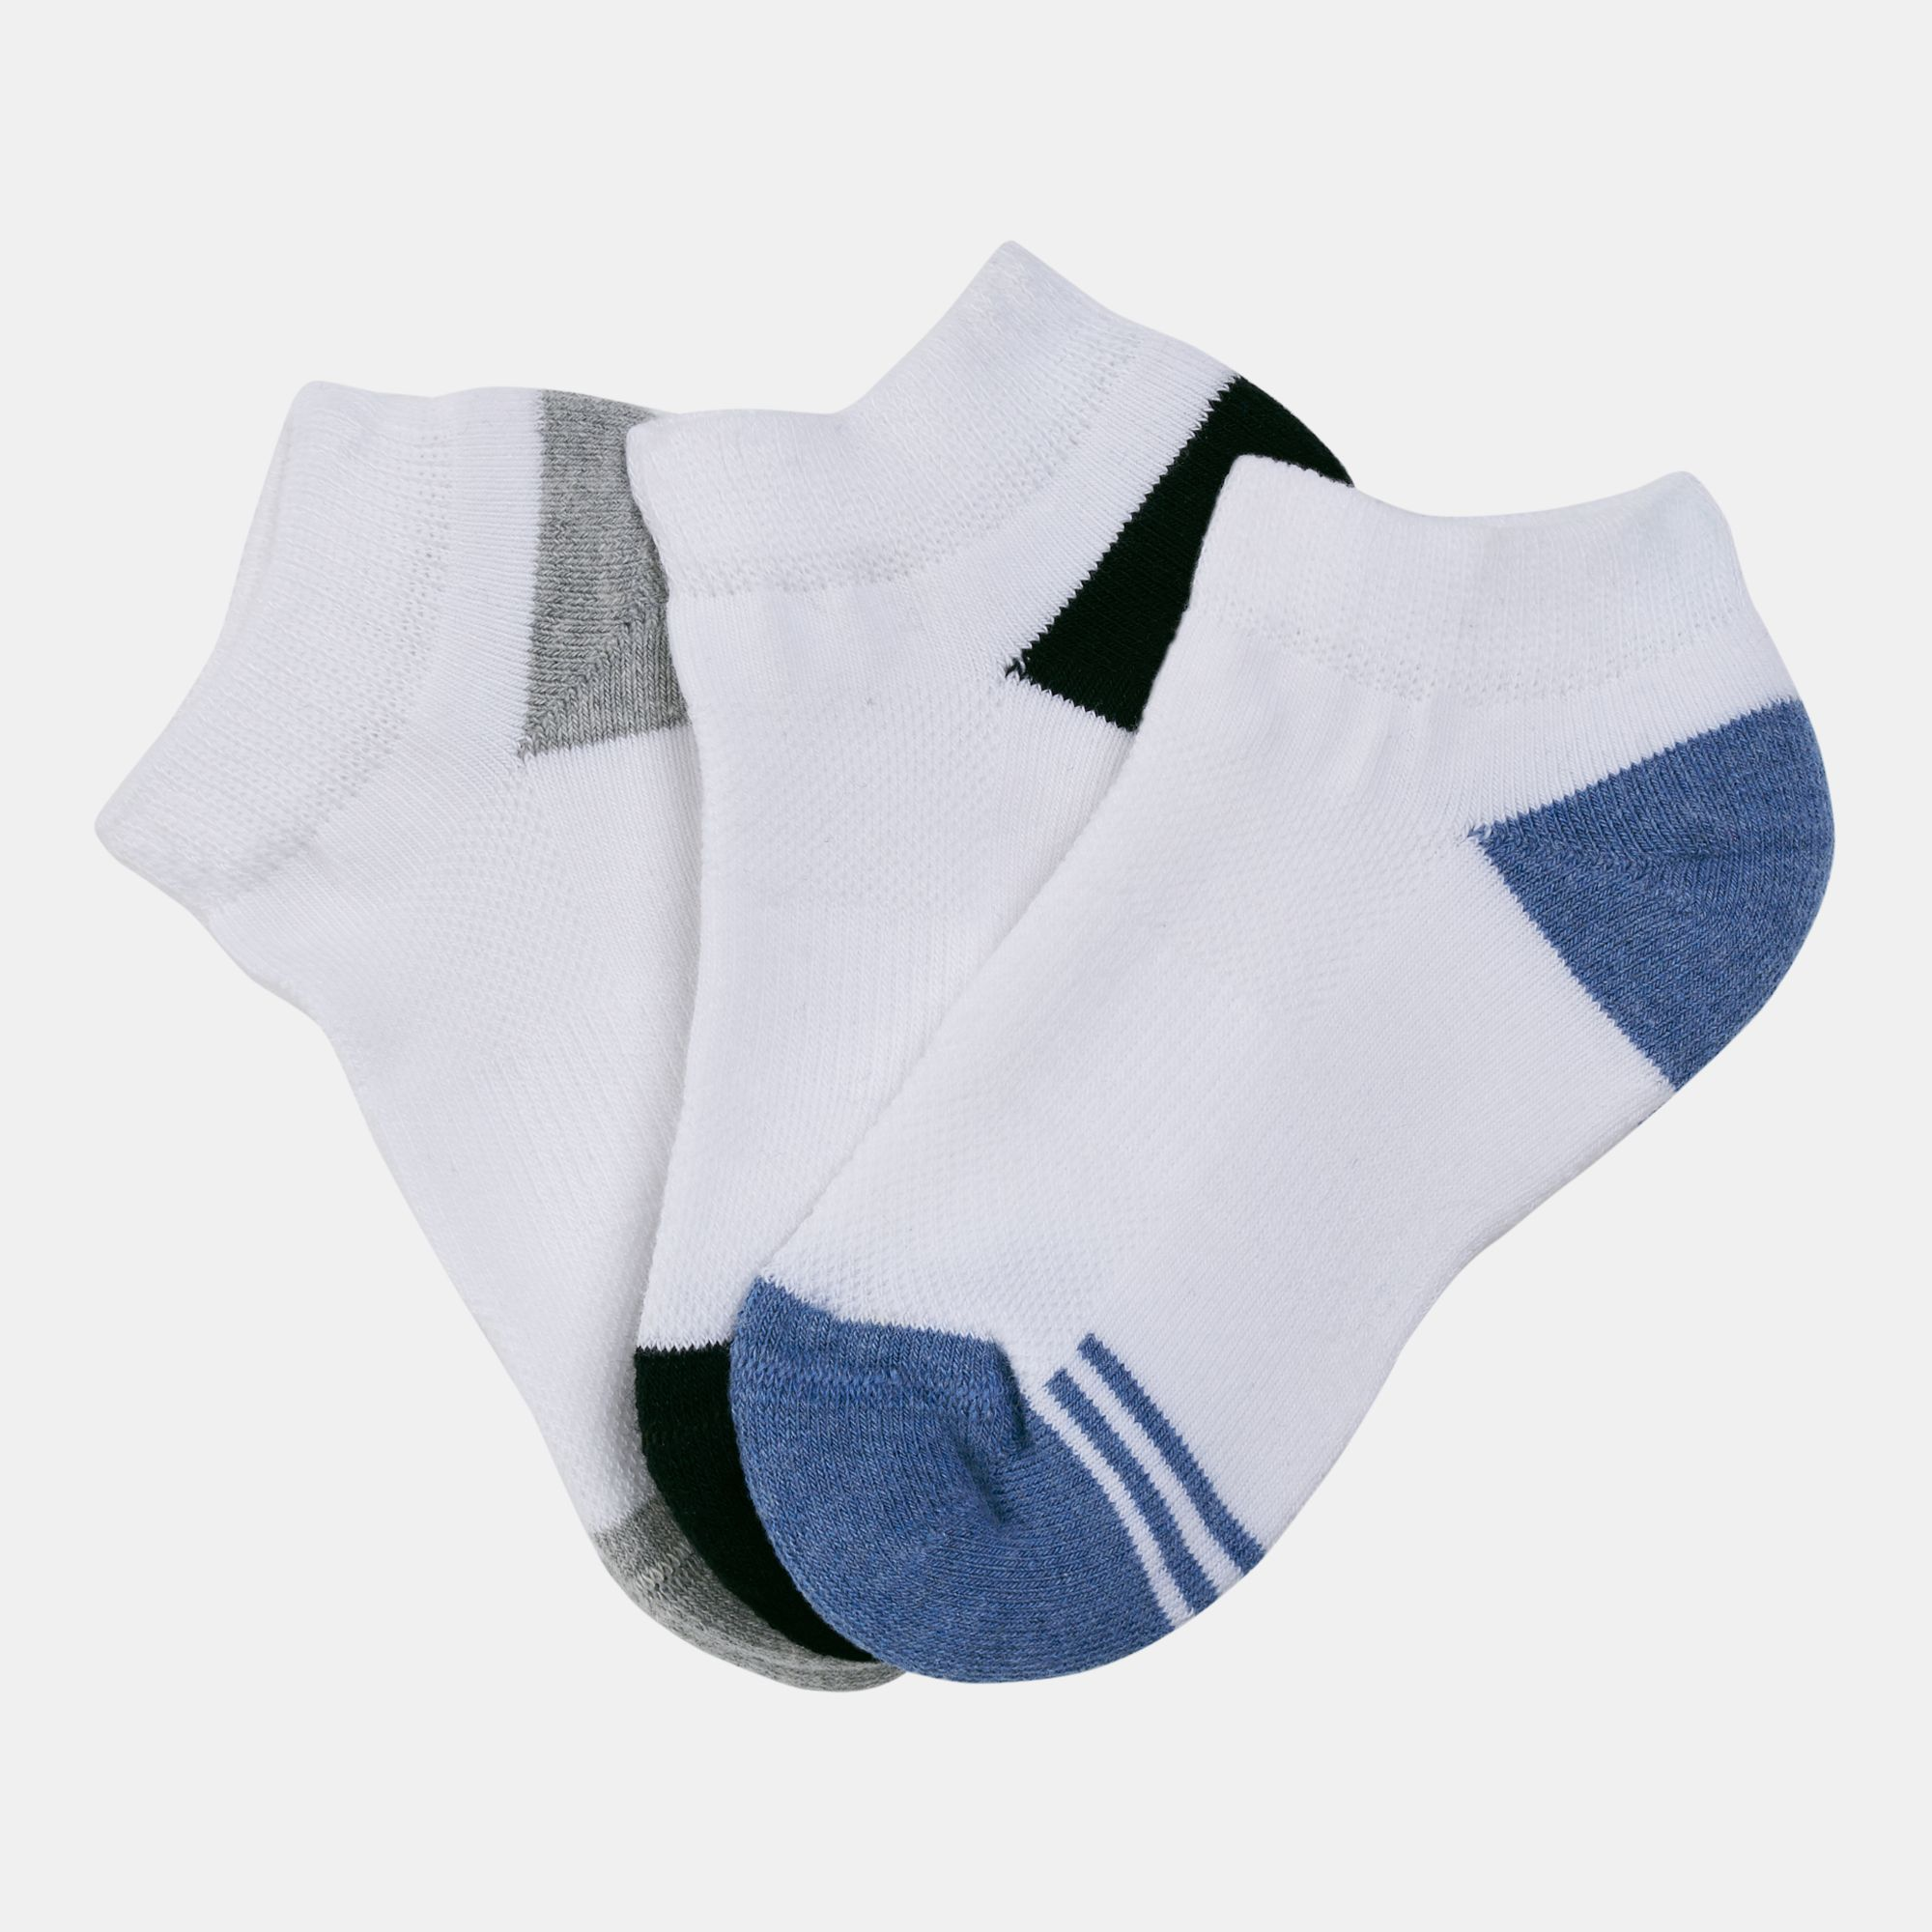 Sun and Sand Sports Kids' Socks (Younger Kids) - 3 Pack